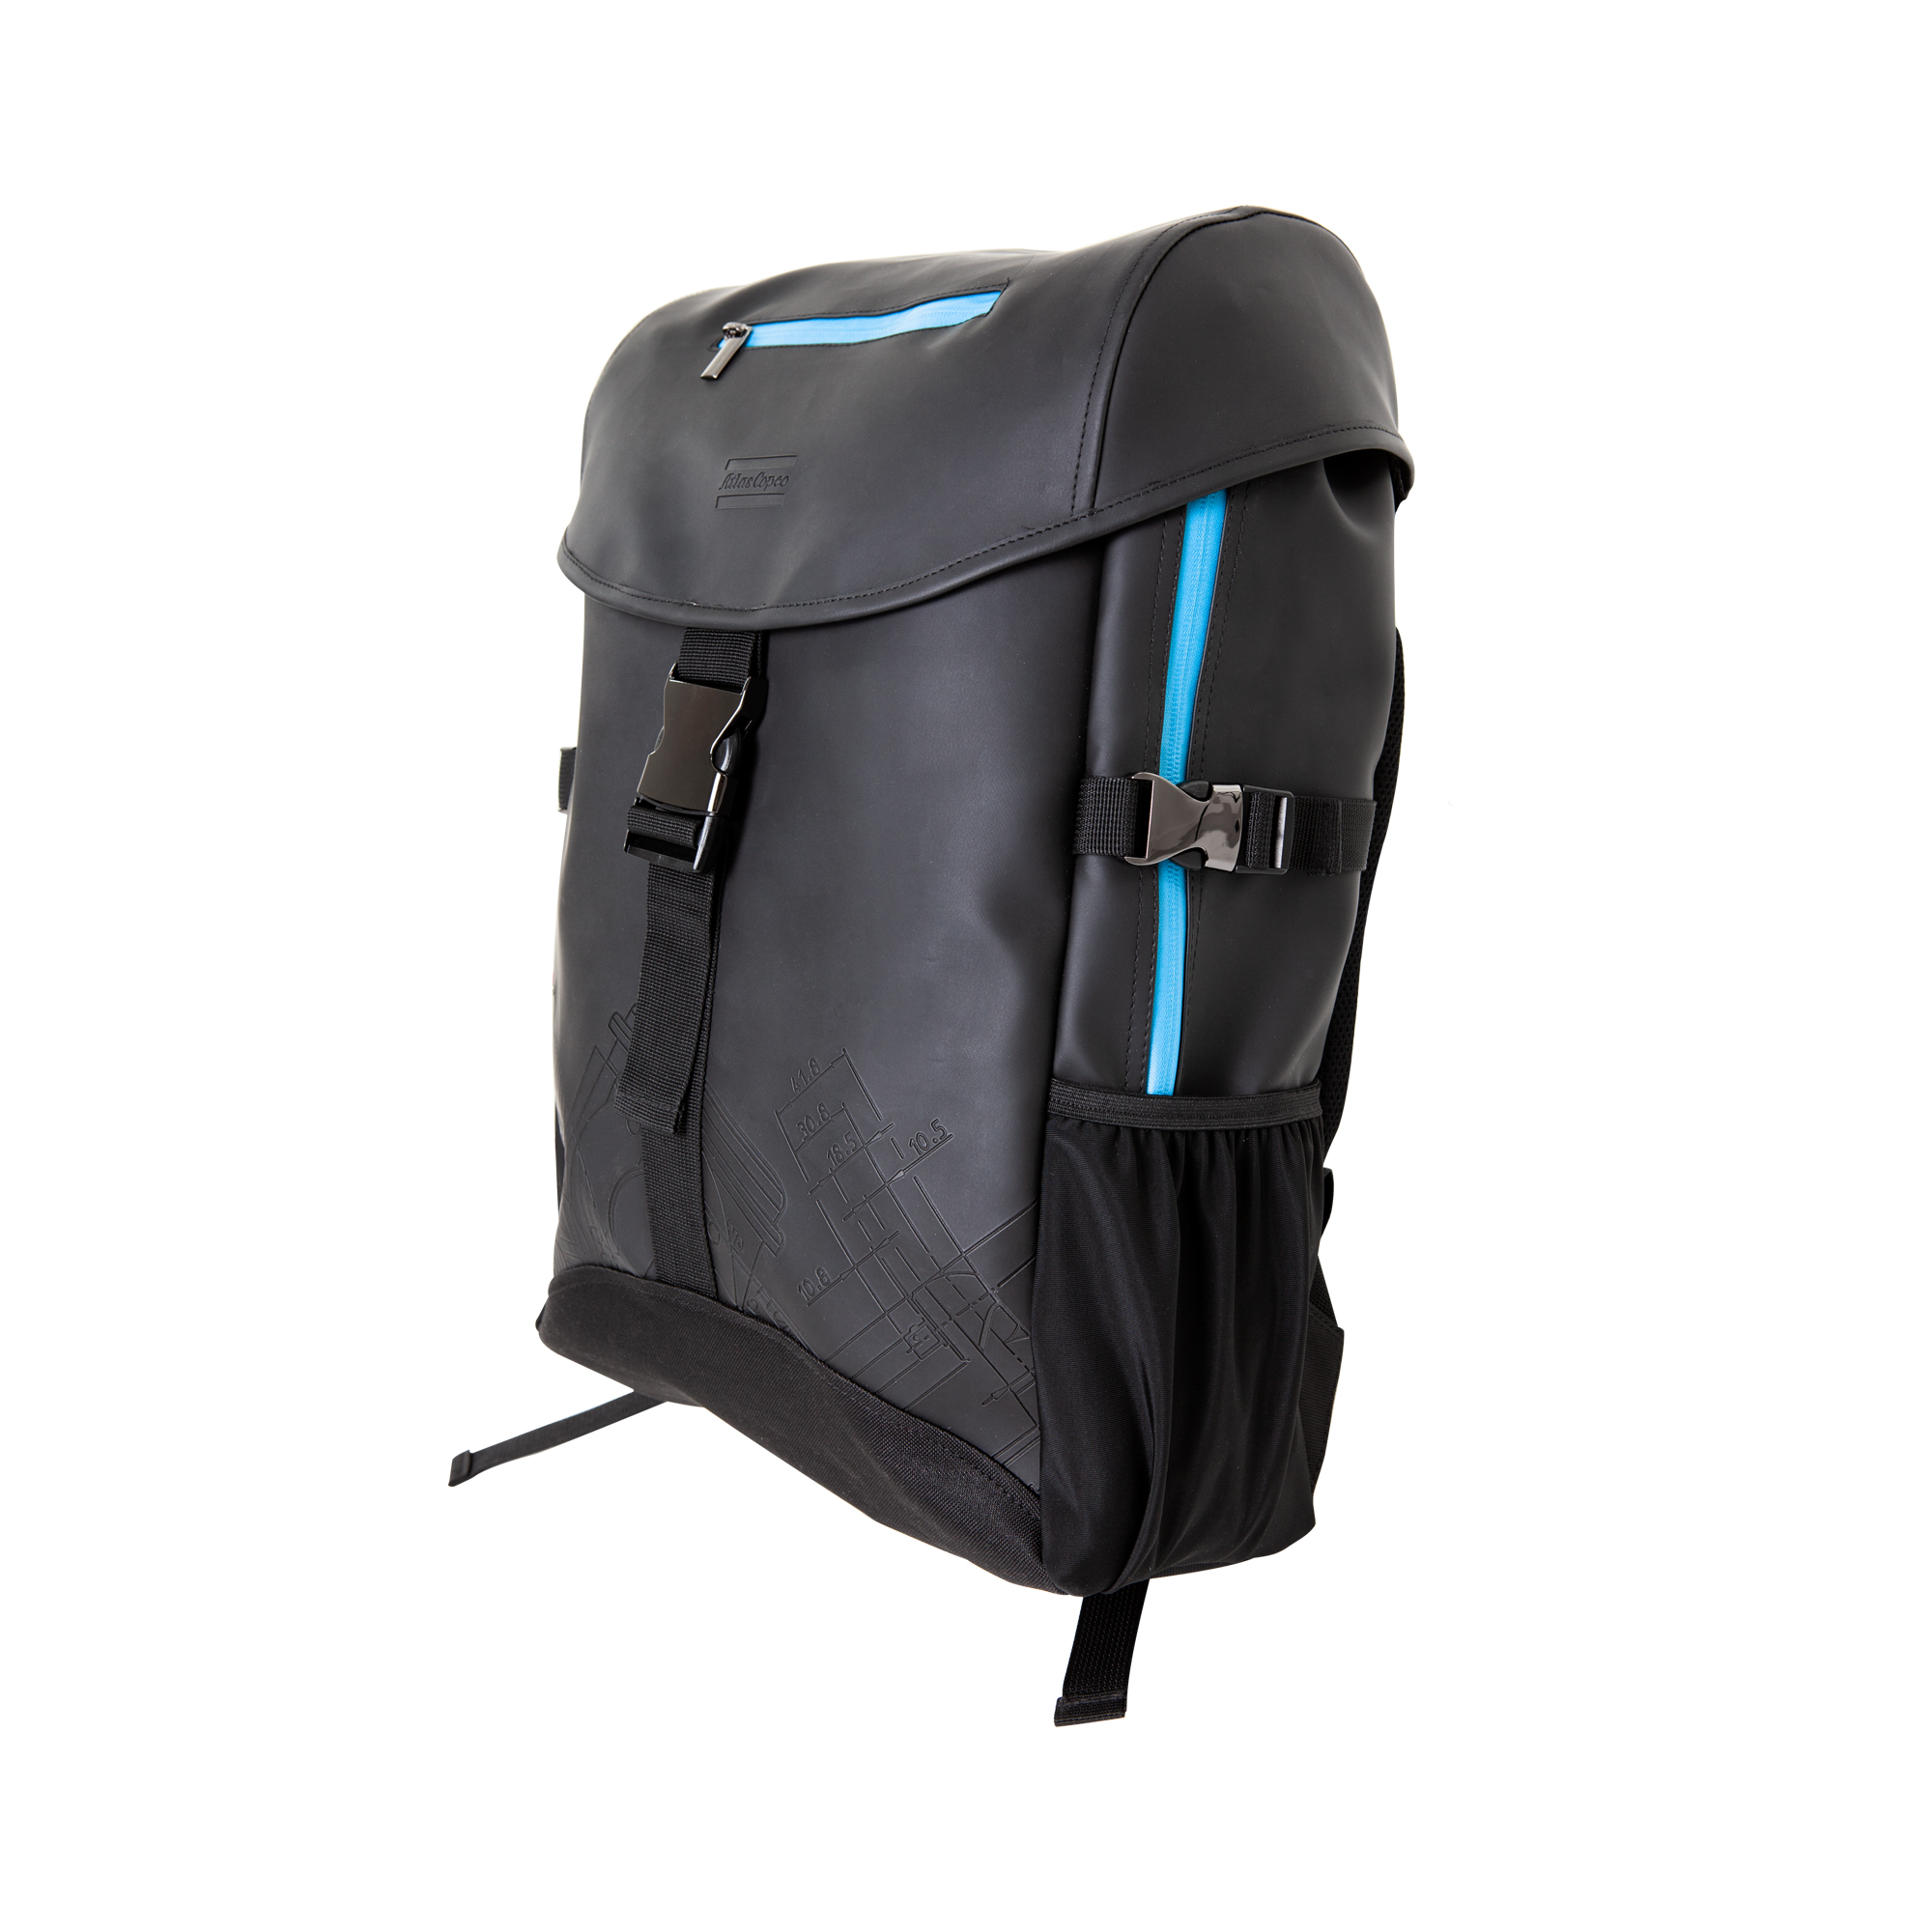 This trend conscious and weatherproof backpack is inspired by Scandinavian style and climate. It has a large 22-liter main compartment with enough room for everything you need on a busy day. The fabric is made to endure tough weather conditions. Backpack BluePrint is a modern-urban bag with impressive style and function.